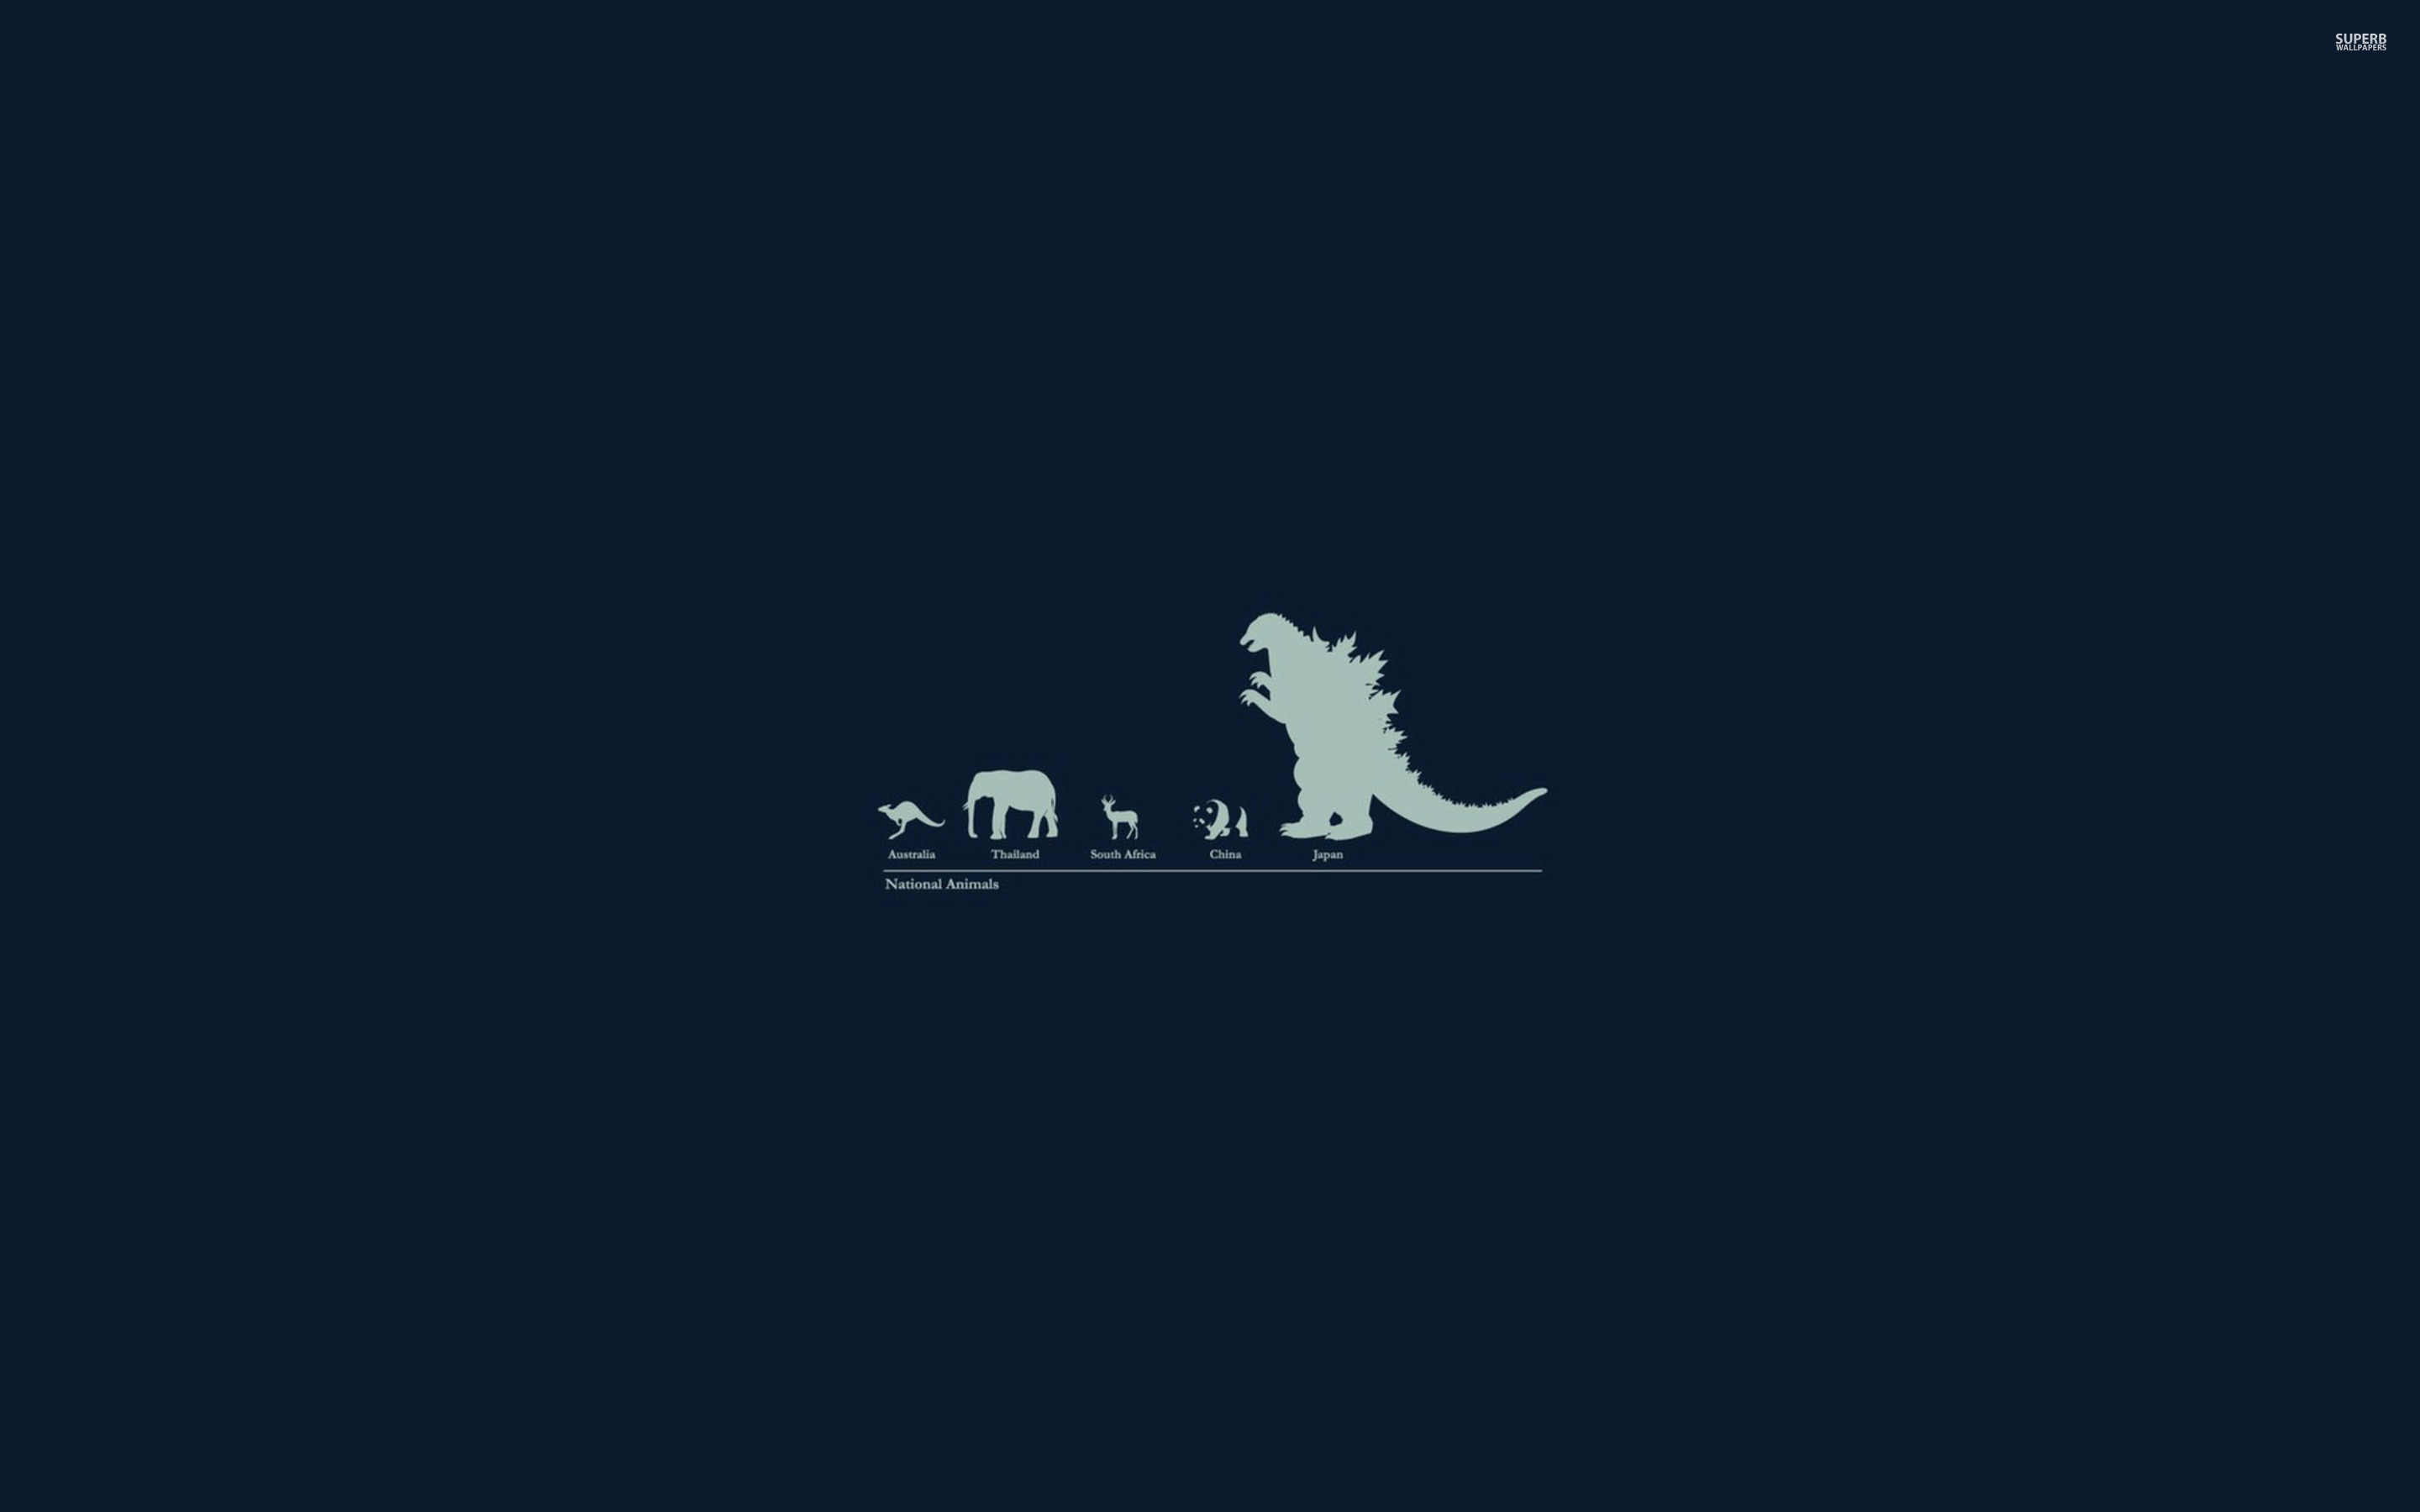 Free Download Godzilla x1800 1800 Wallpapers For Retina x1800 For Your Desktop Mobile Tablet Explore 44 X 1800 Retina Wallpapers Best Wallpapers For Mac Macbook Retina Wallpaper Wallpaper For Macbook Air